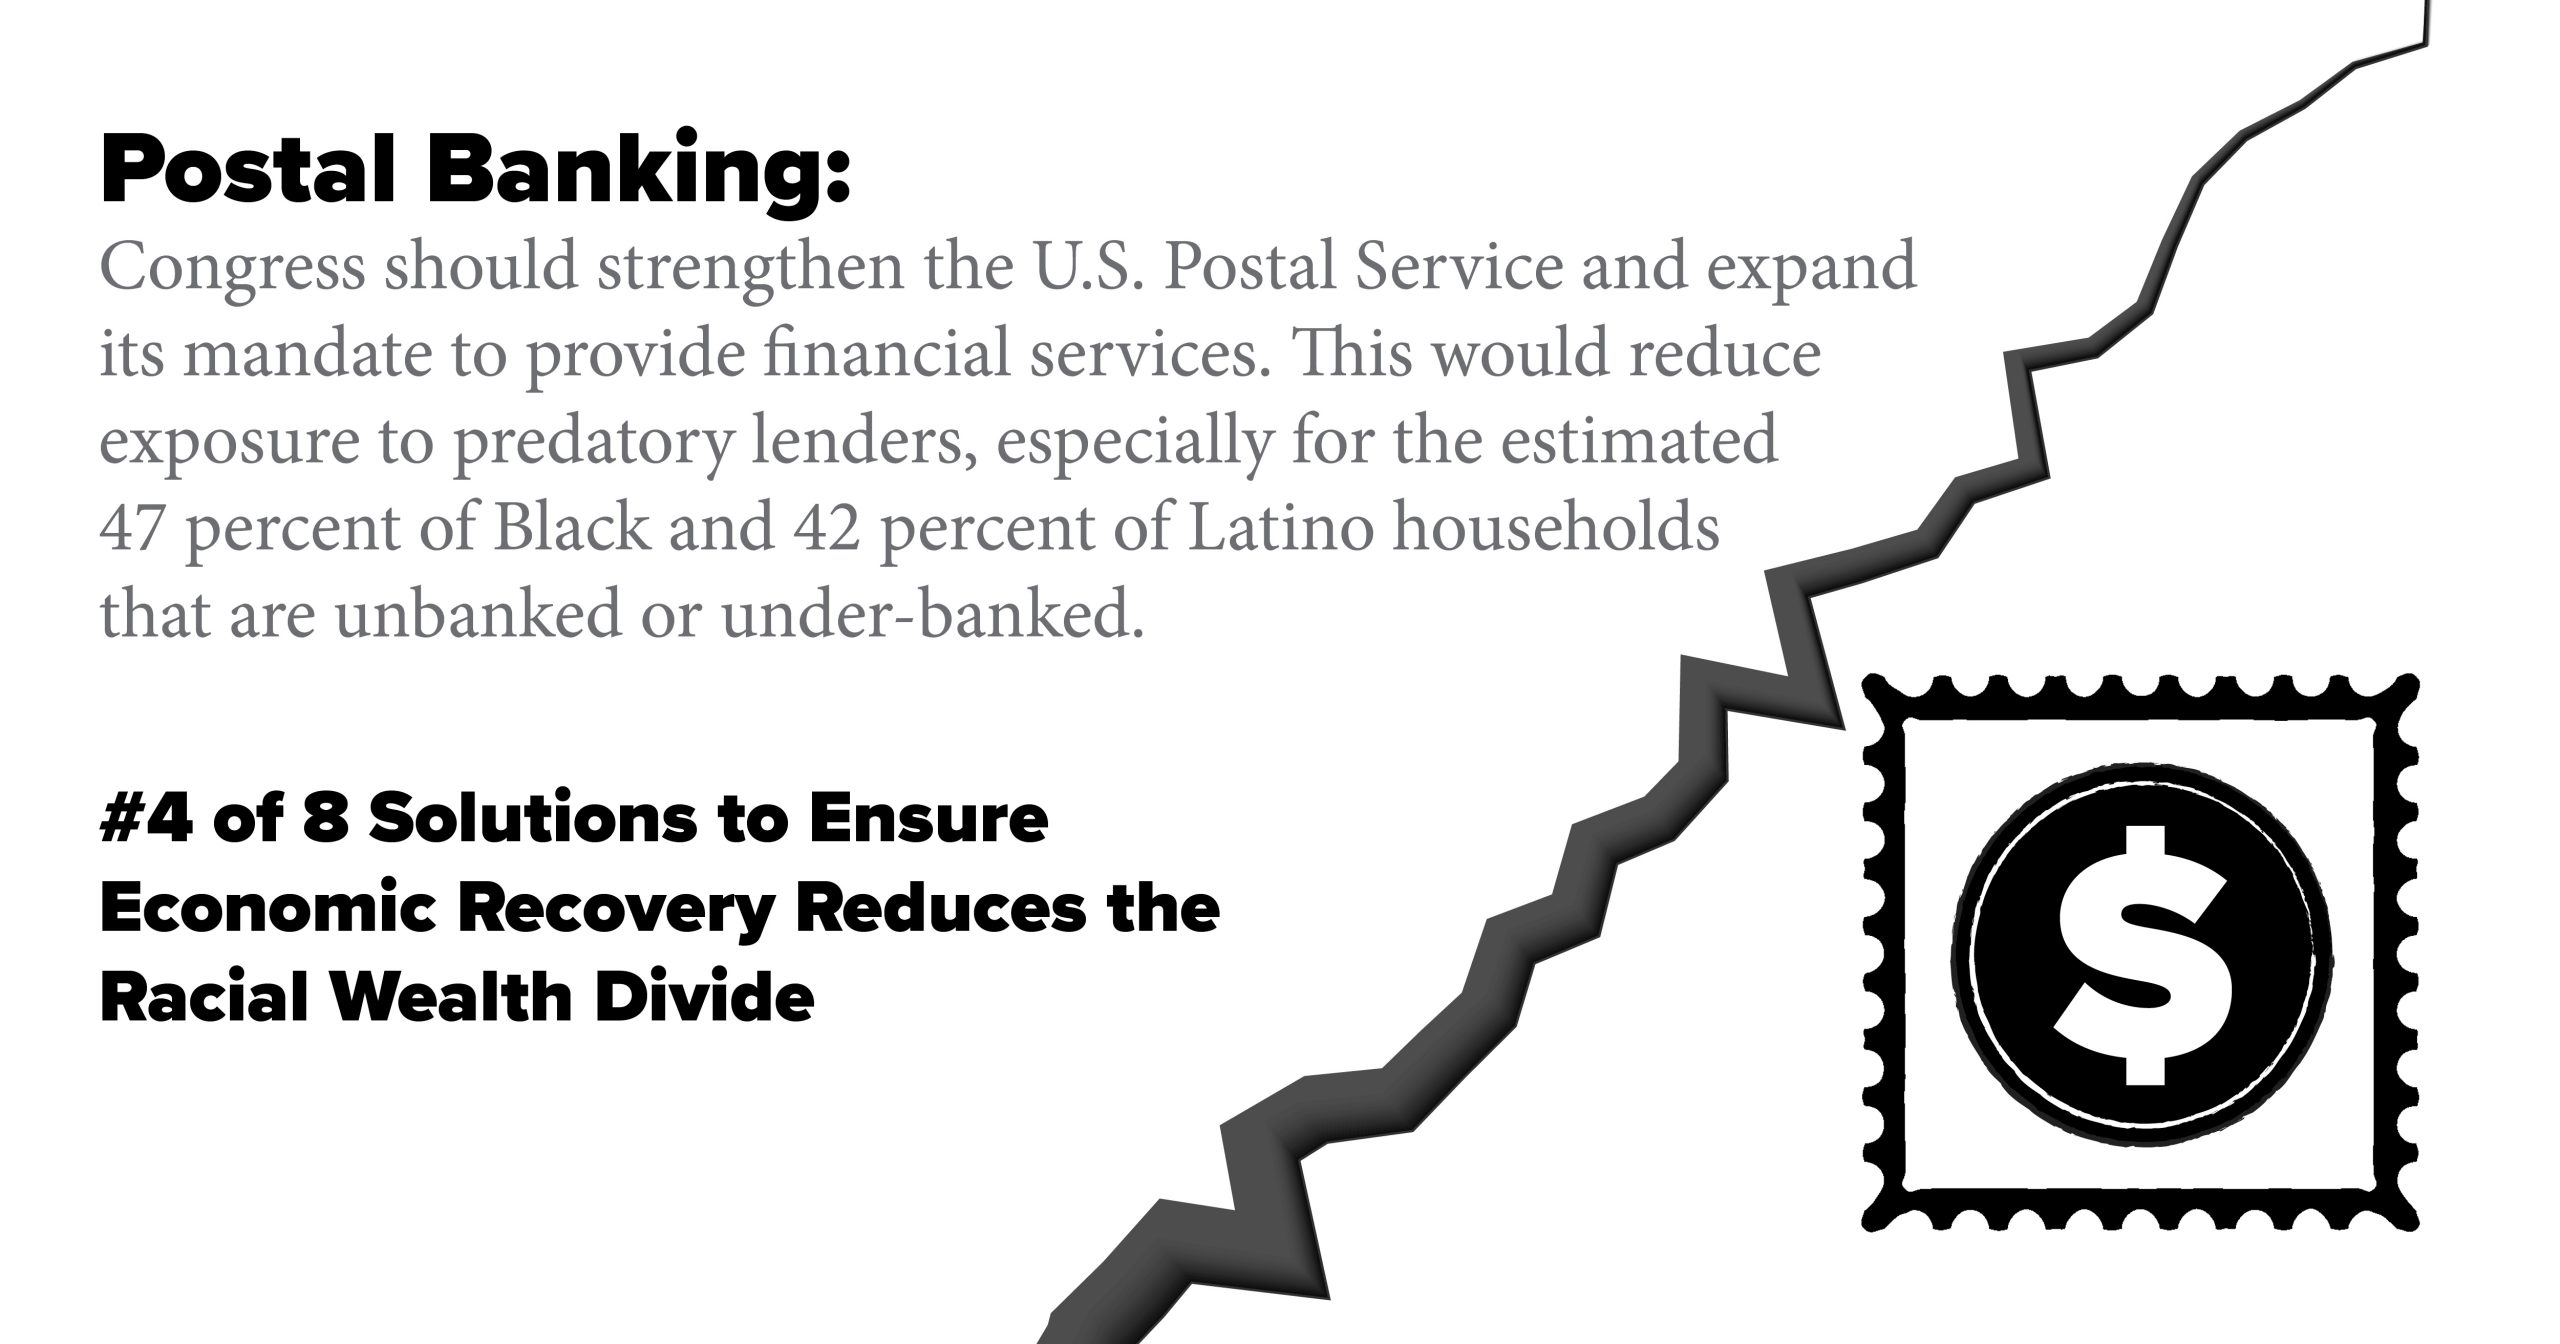 Postal Banking: Congress should strengthen the U.S. Postal Service and expand its mandate to provide financial services. This would reduce exposure to predatory lenders, especially for the estimated 47 percent of Black and 42 percent of Latino households that are unbanked or under-banked.